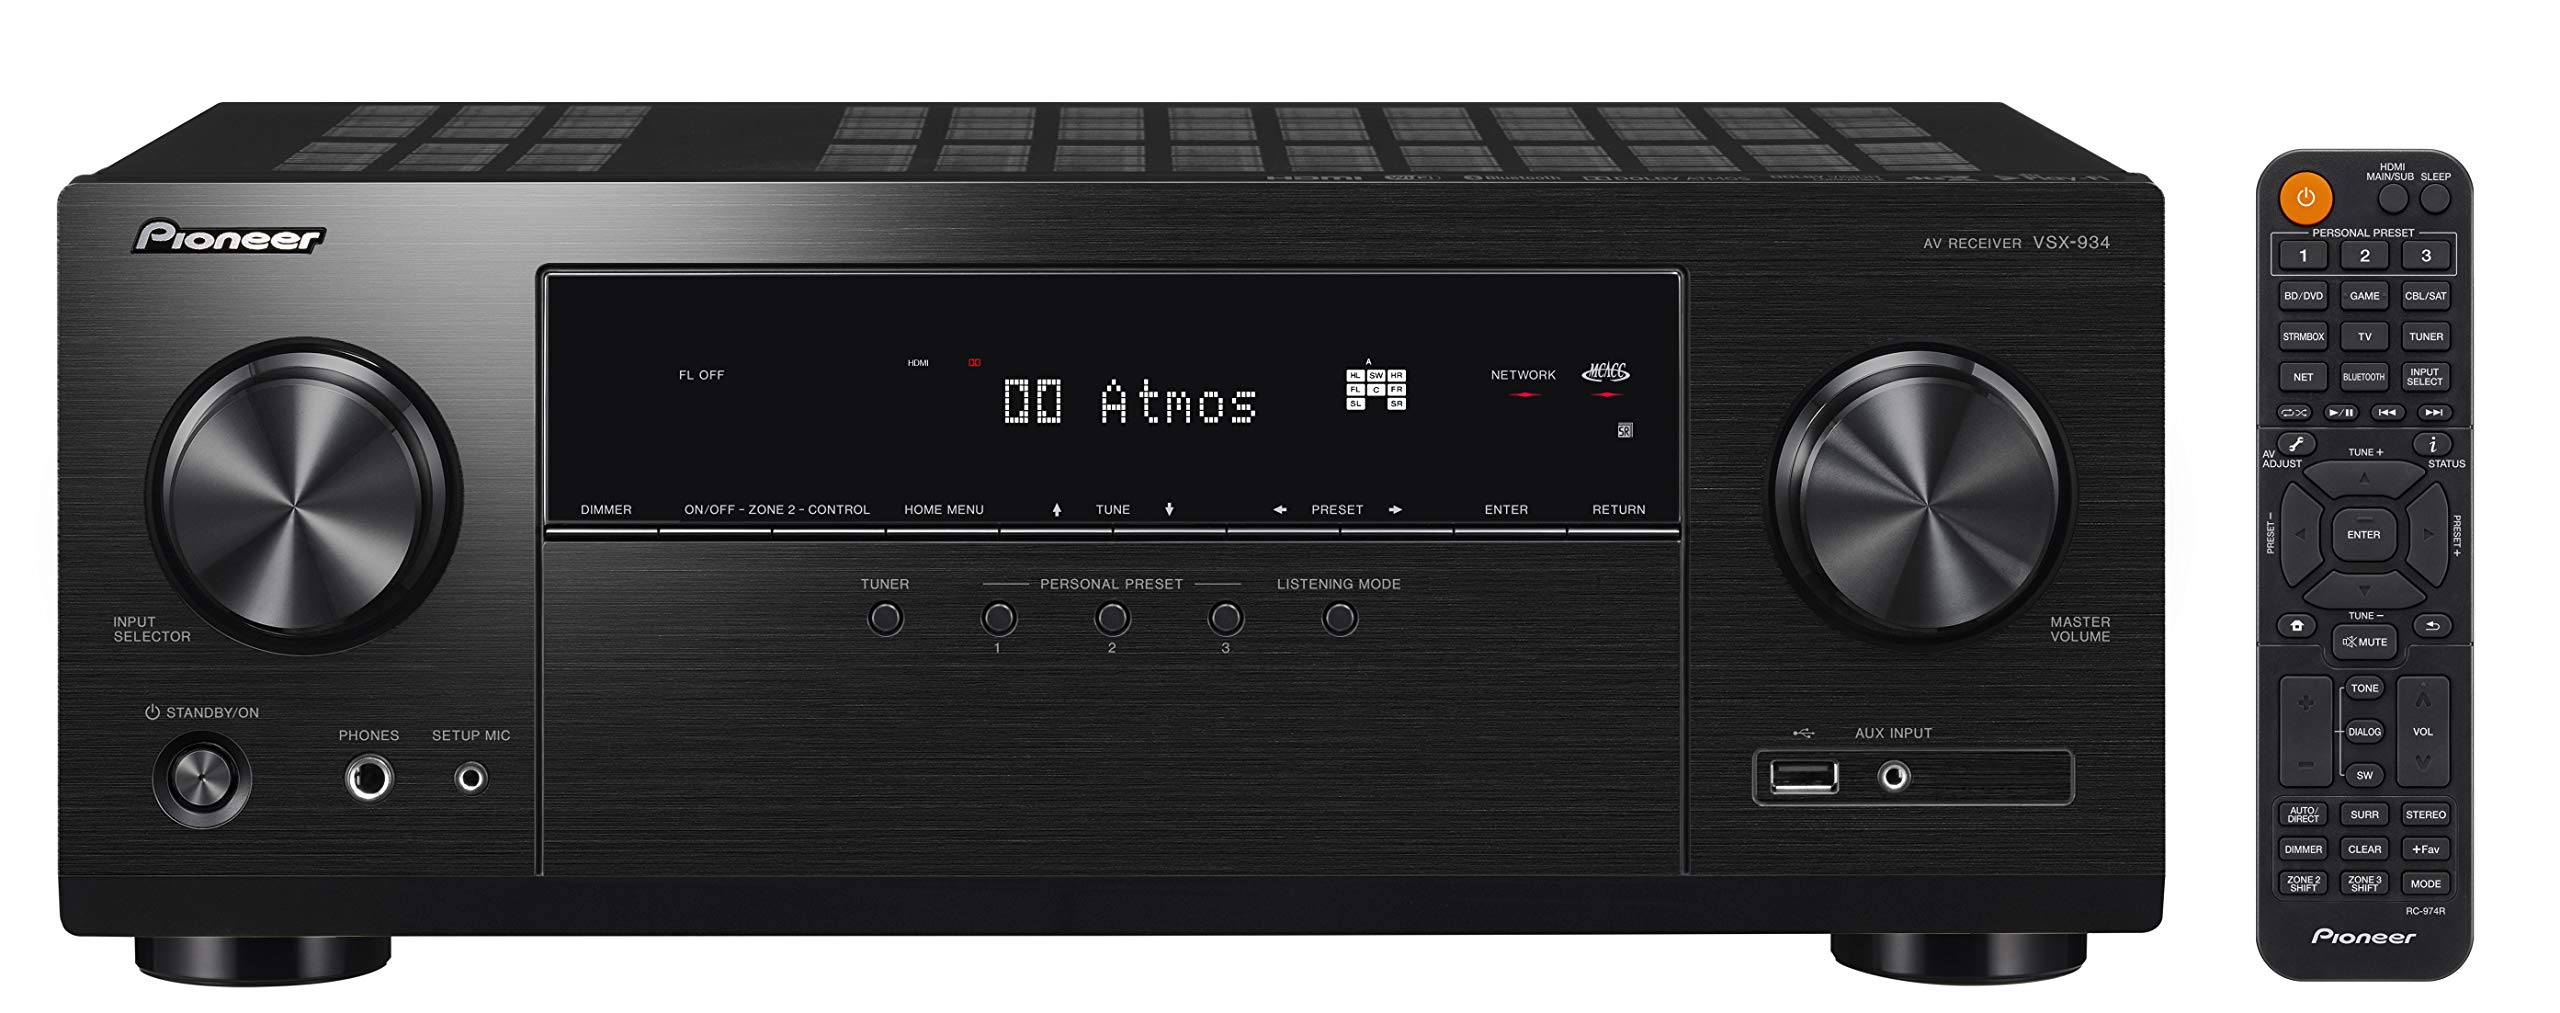 71VLGyv1NbL - Pioneer VSX-934 Receiver 7.2-channel (7x160 Watt, 6 HDMI Inputs (4K), Dolby Atmos, DTS: X, Dolby Atmos Height Virtualizer, Works with Sonos, Zone 2, AirPlay 2, Bluetooth, USB), Black